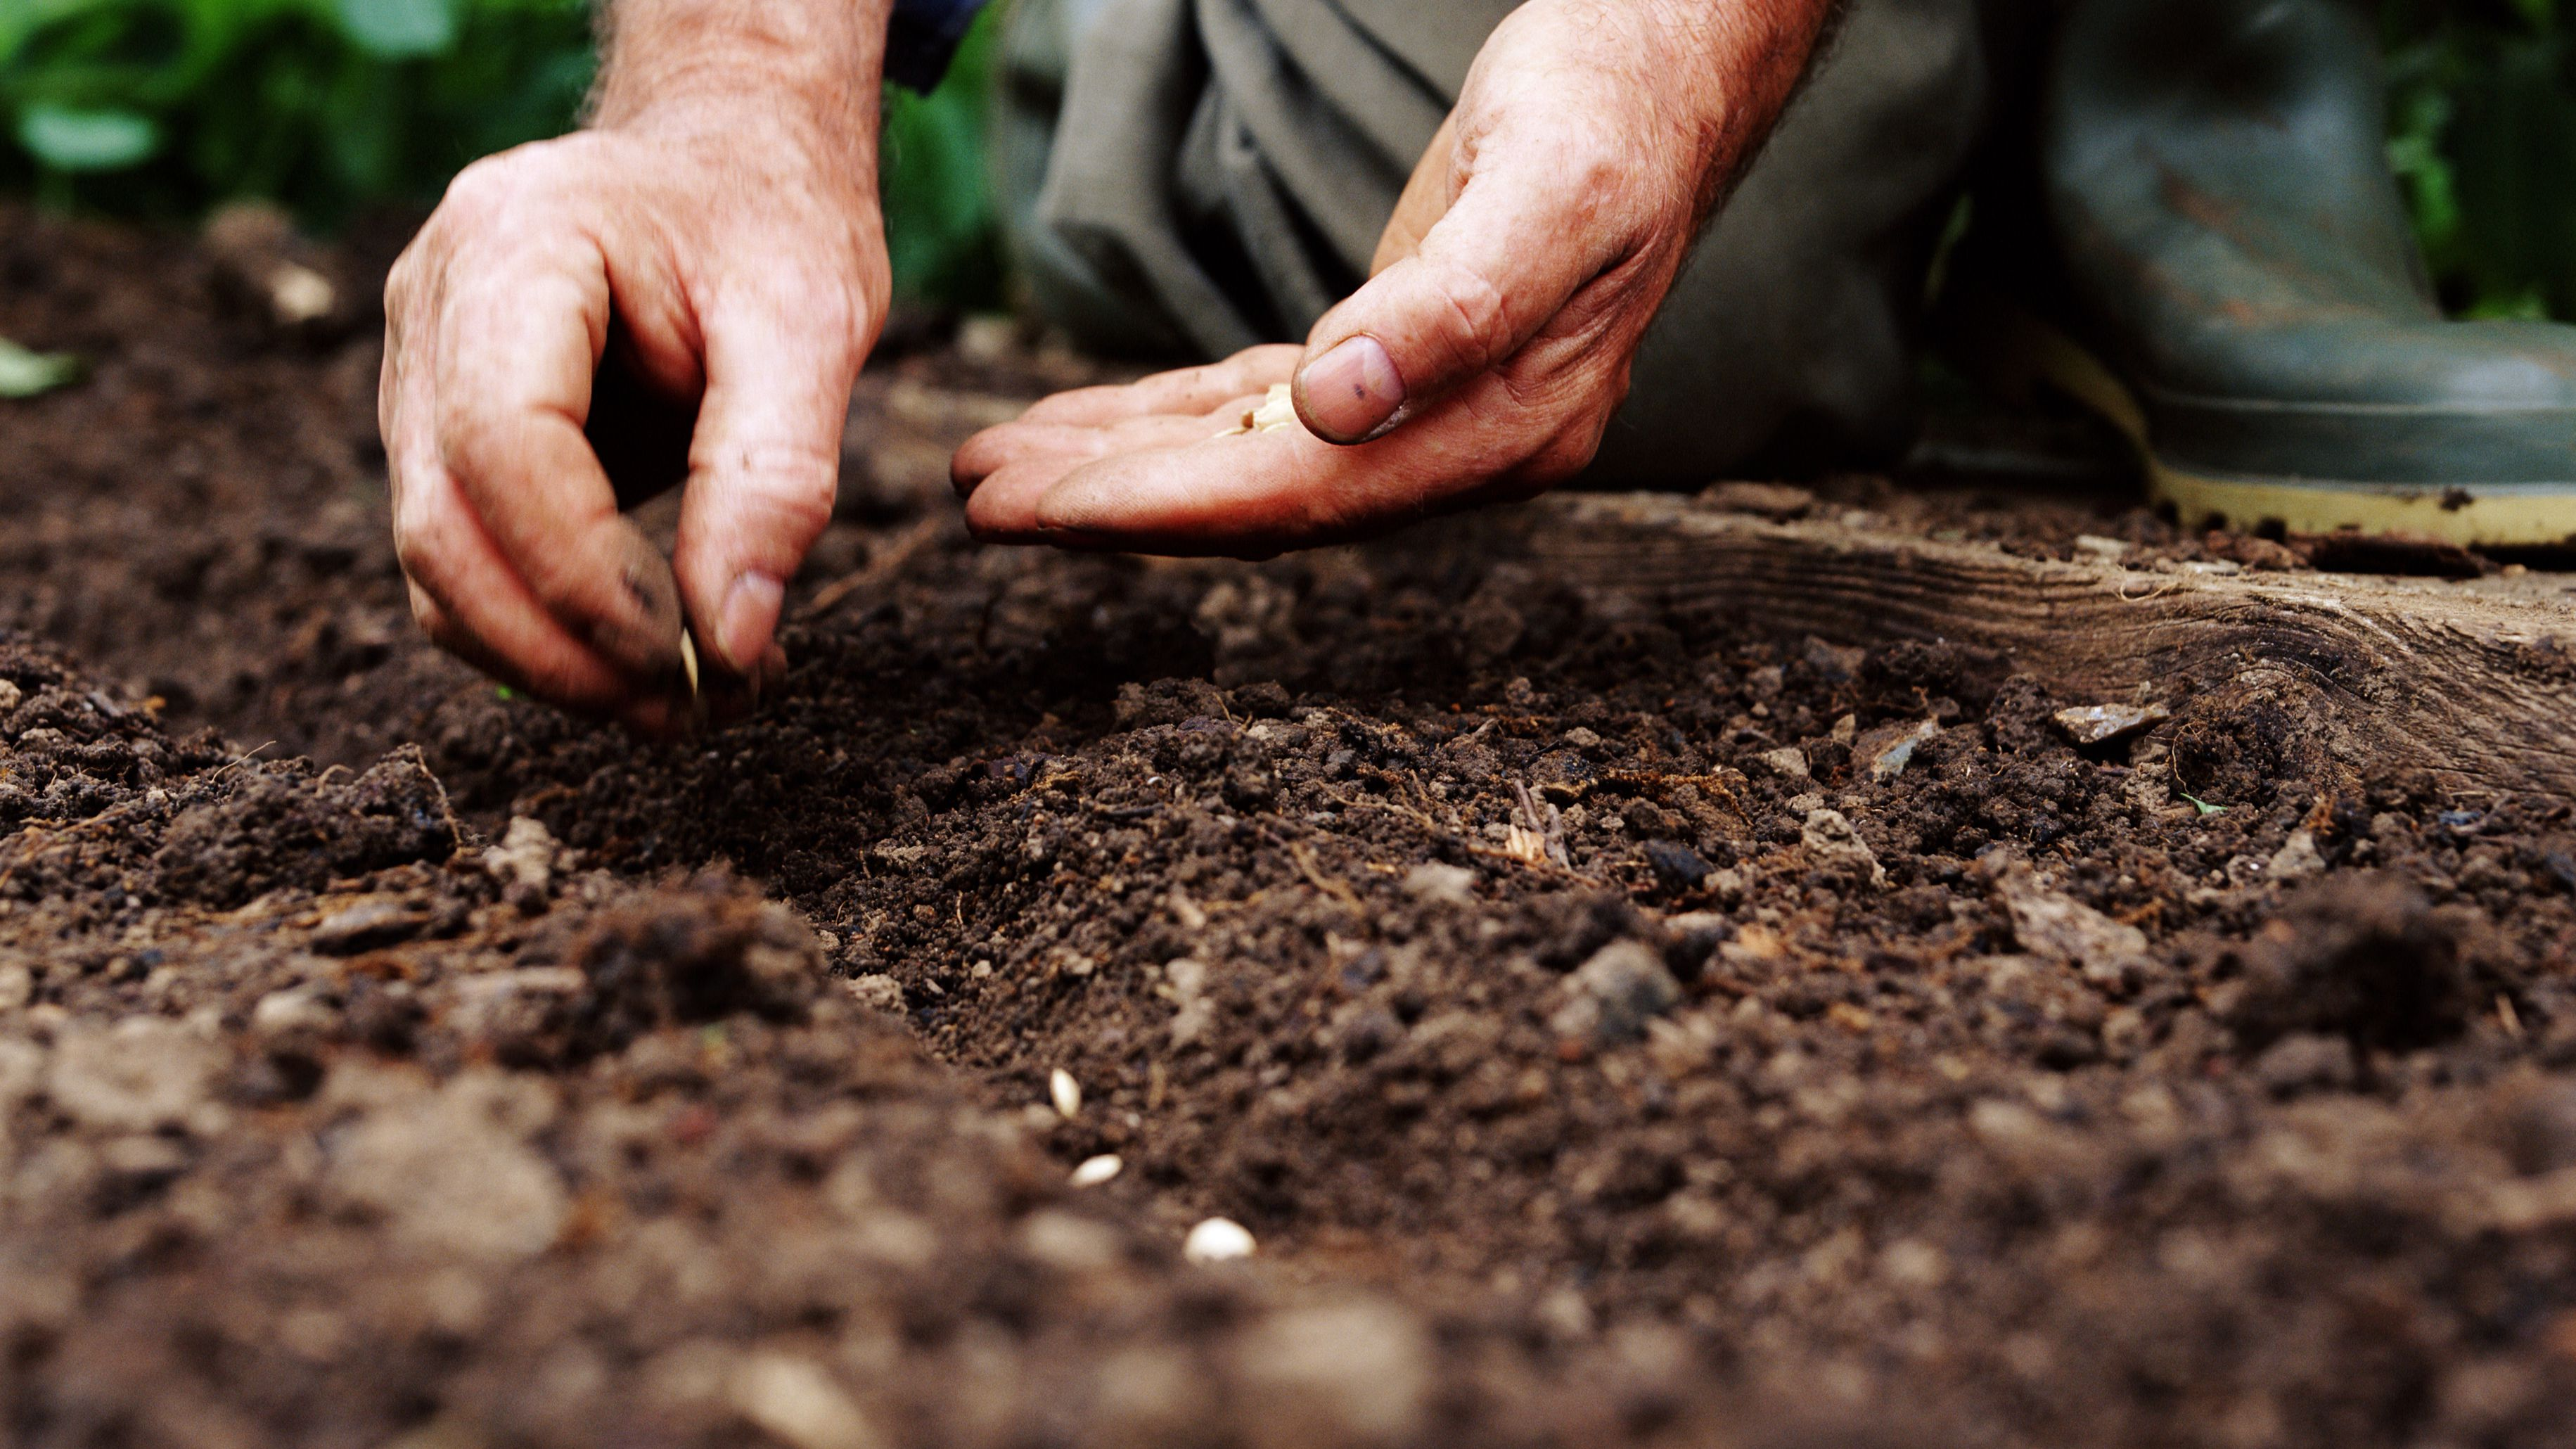 What Is Direct Seeding Or Direct Sowing